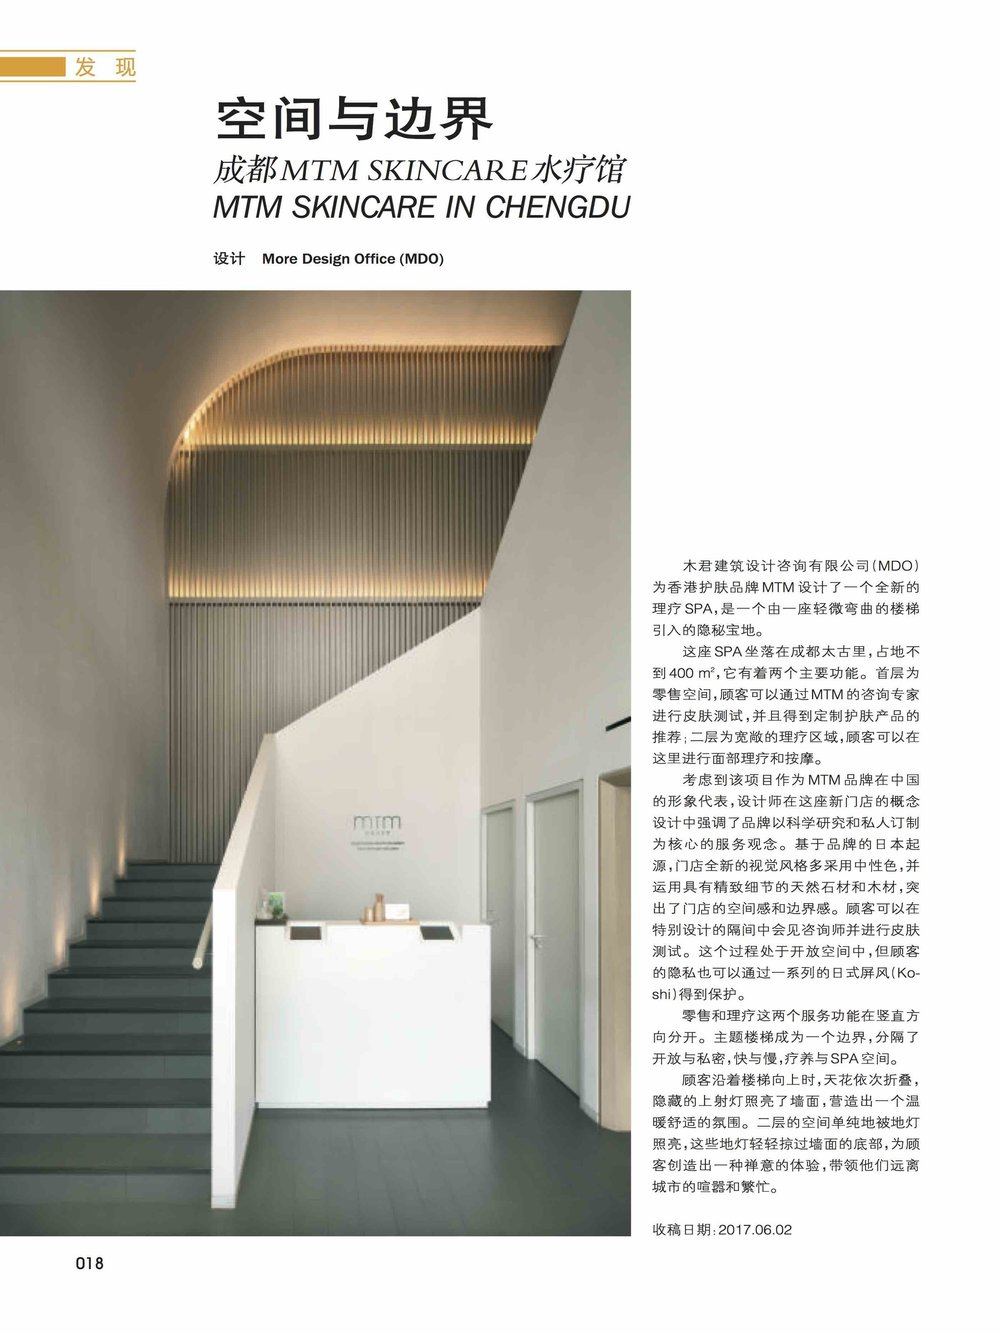 id+c | July 2017 - MTM Skincare Chengdu / More Design Office